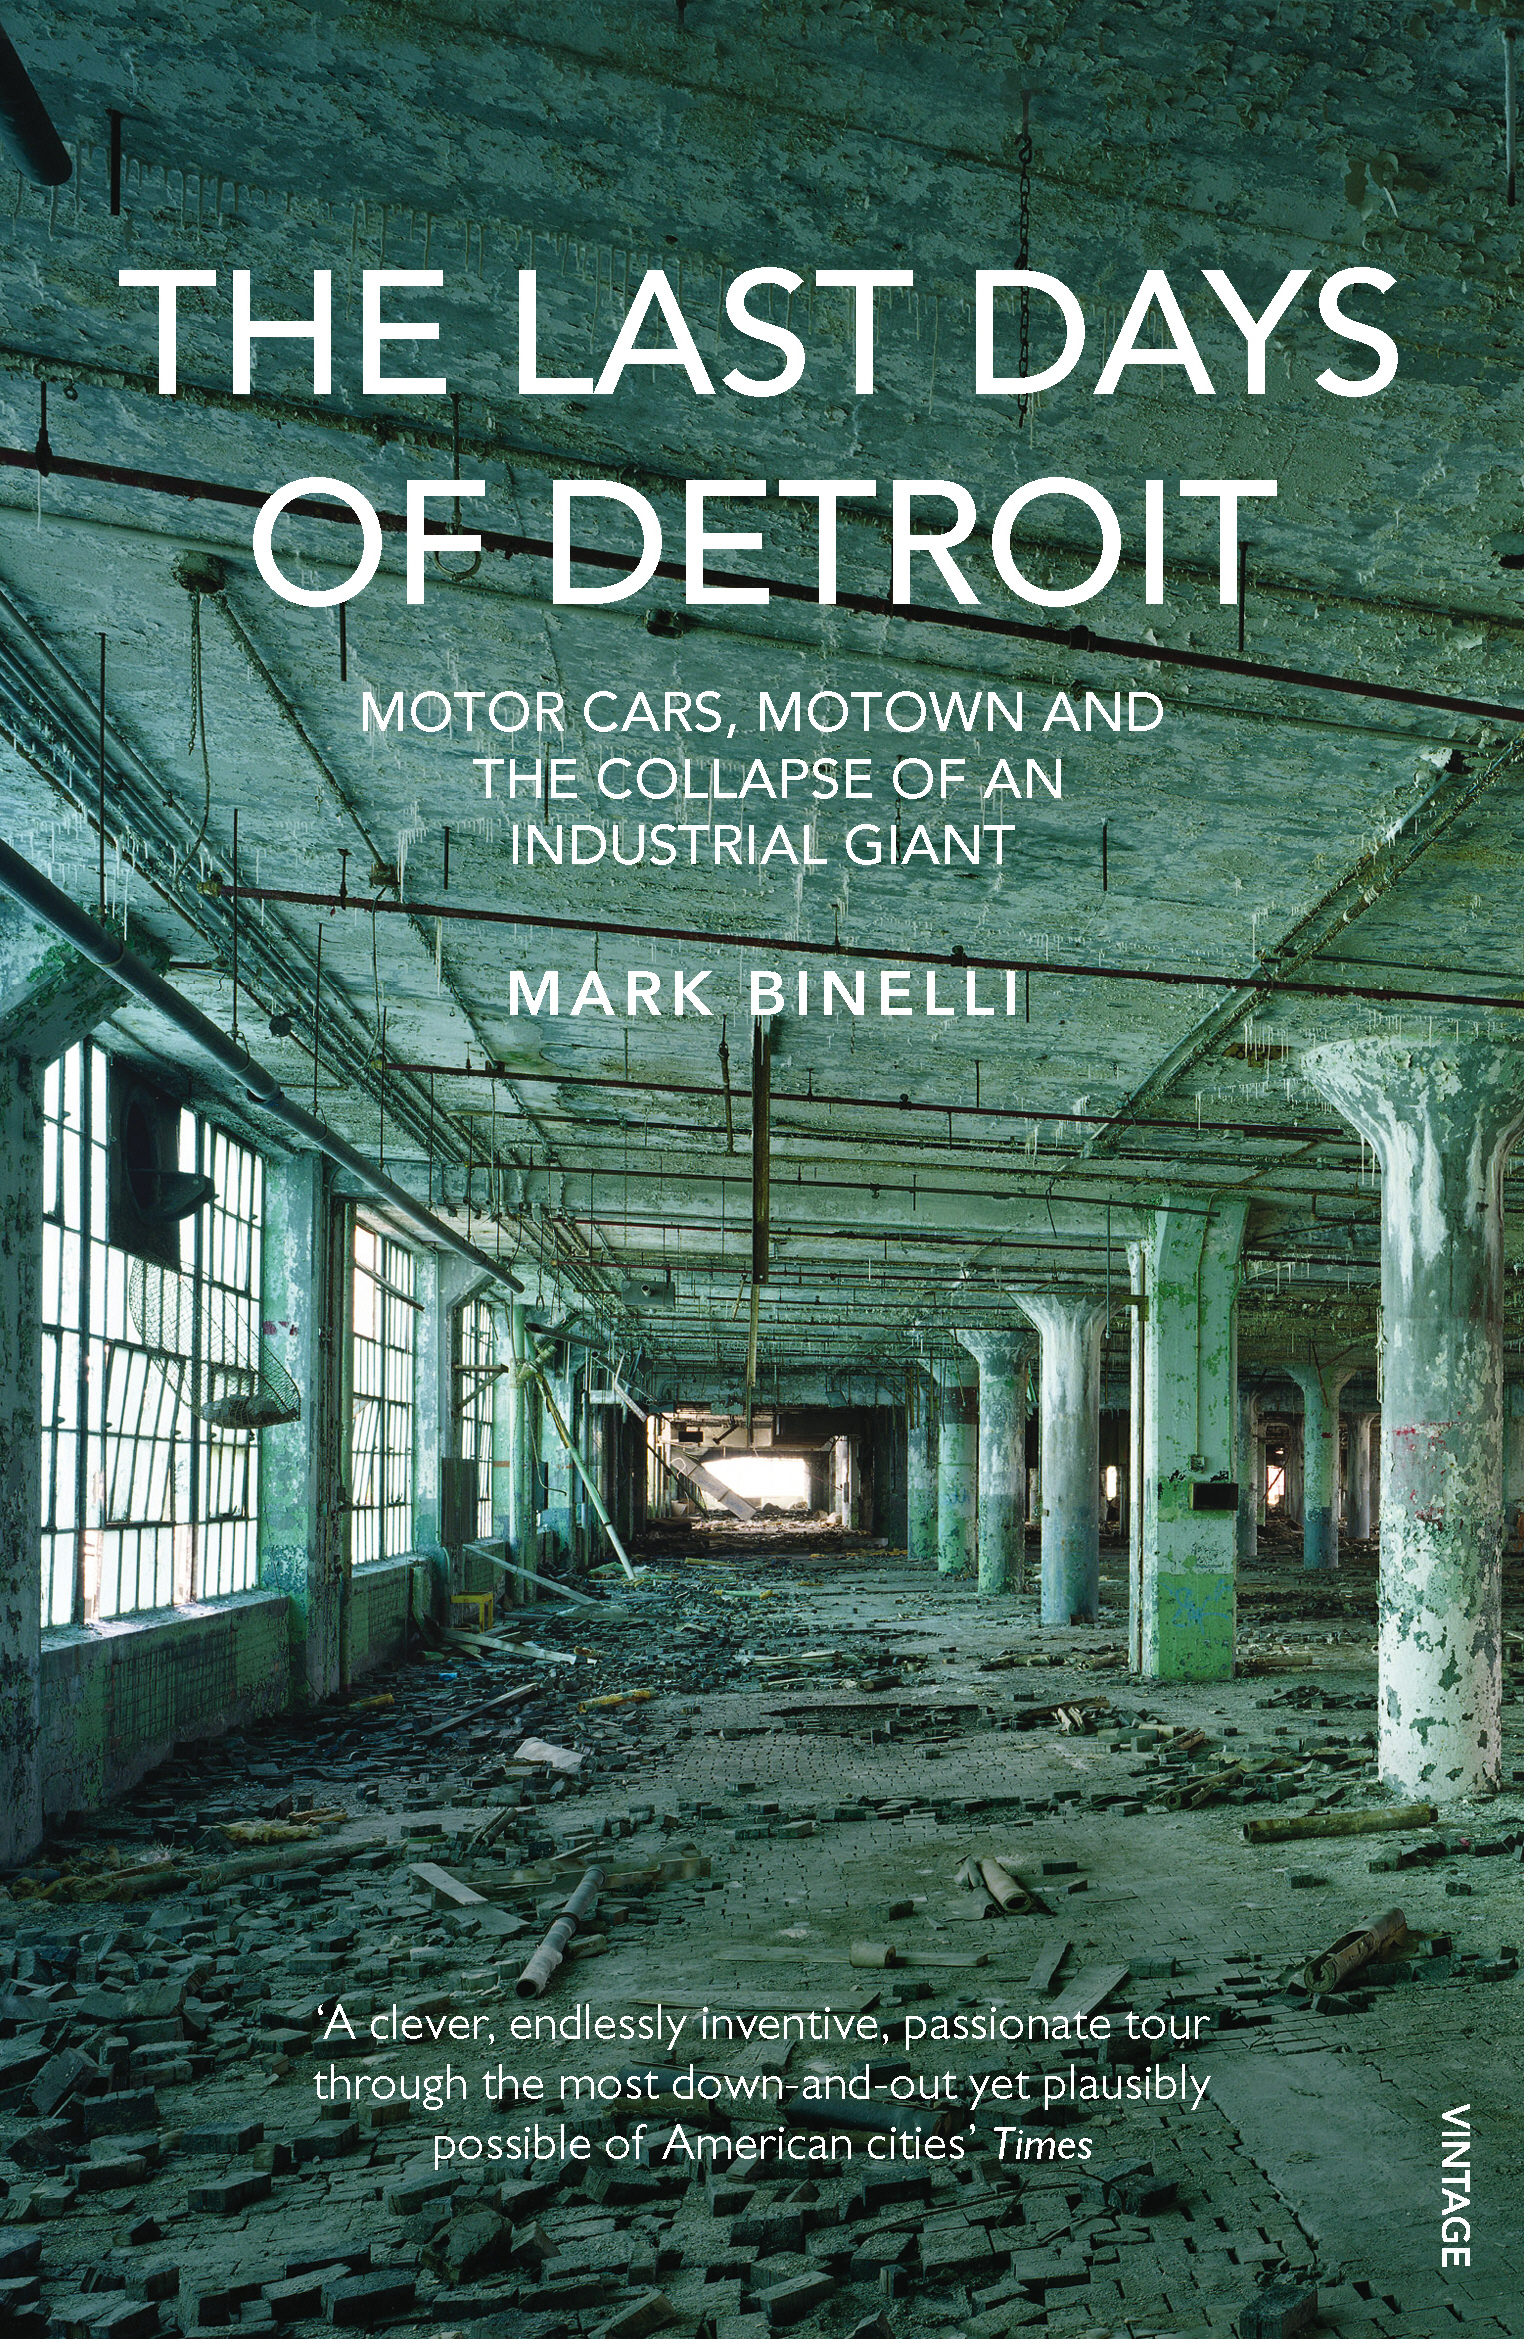 The Last Days of Detroit Motor Cars,  Motown and the Collapse of an Industrial Giant